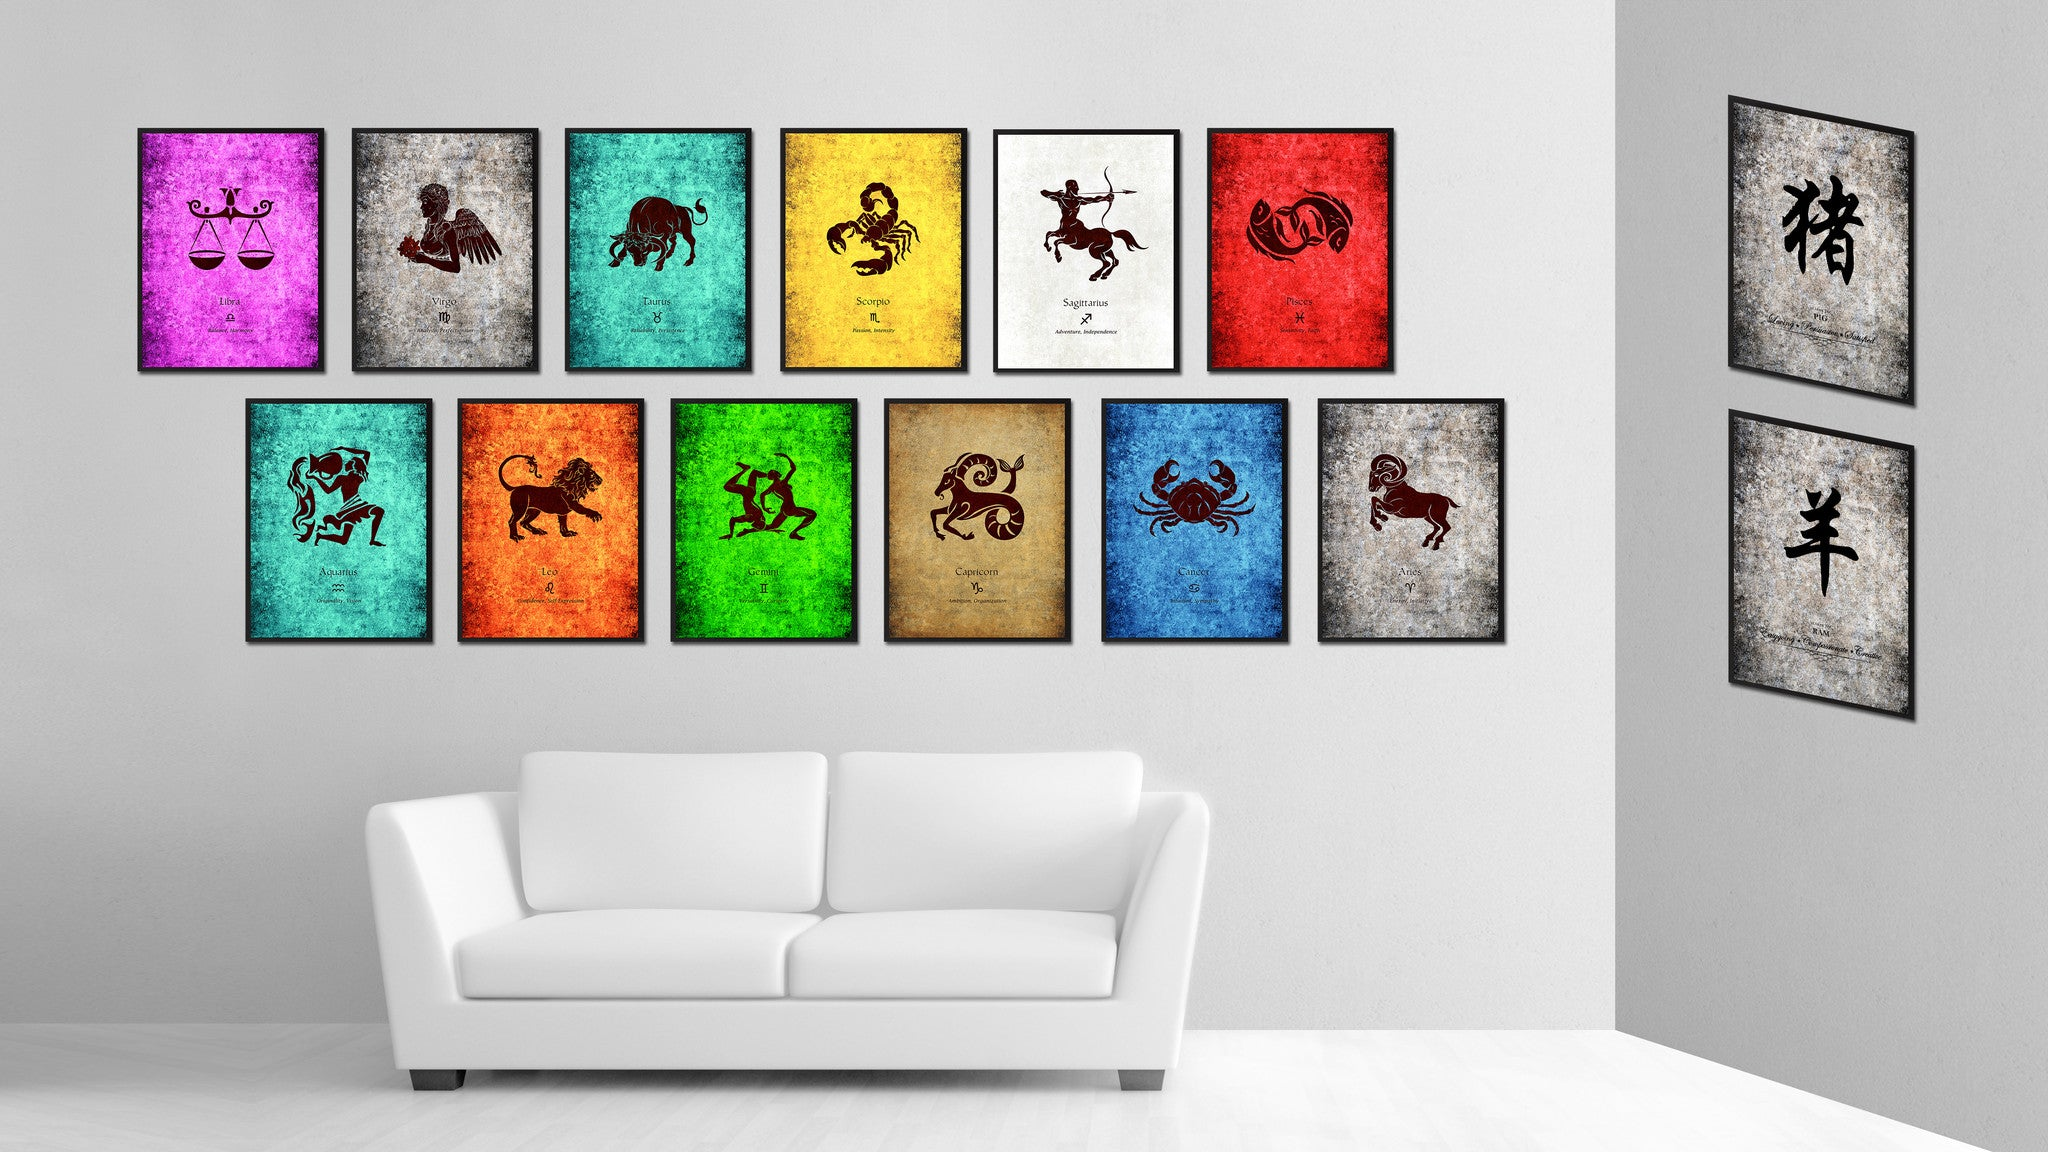 Zodiac Aquarius Horoscope Astrology Canvas Print, Picture Frame Home Decor Wall Art Gift